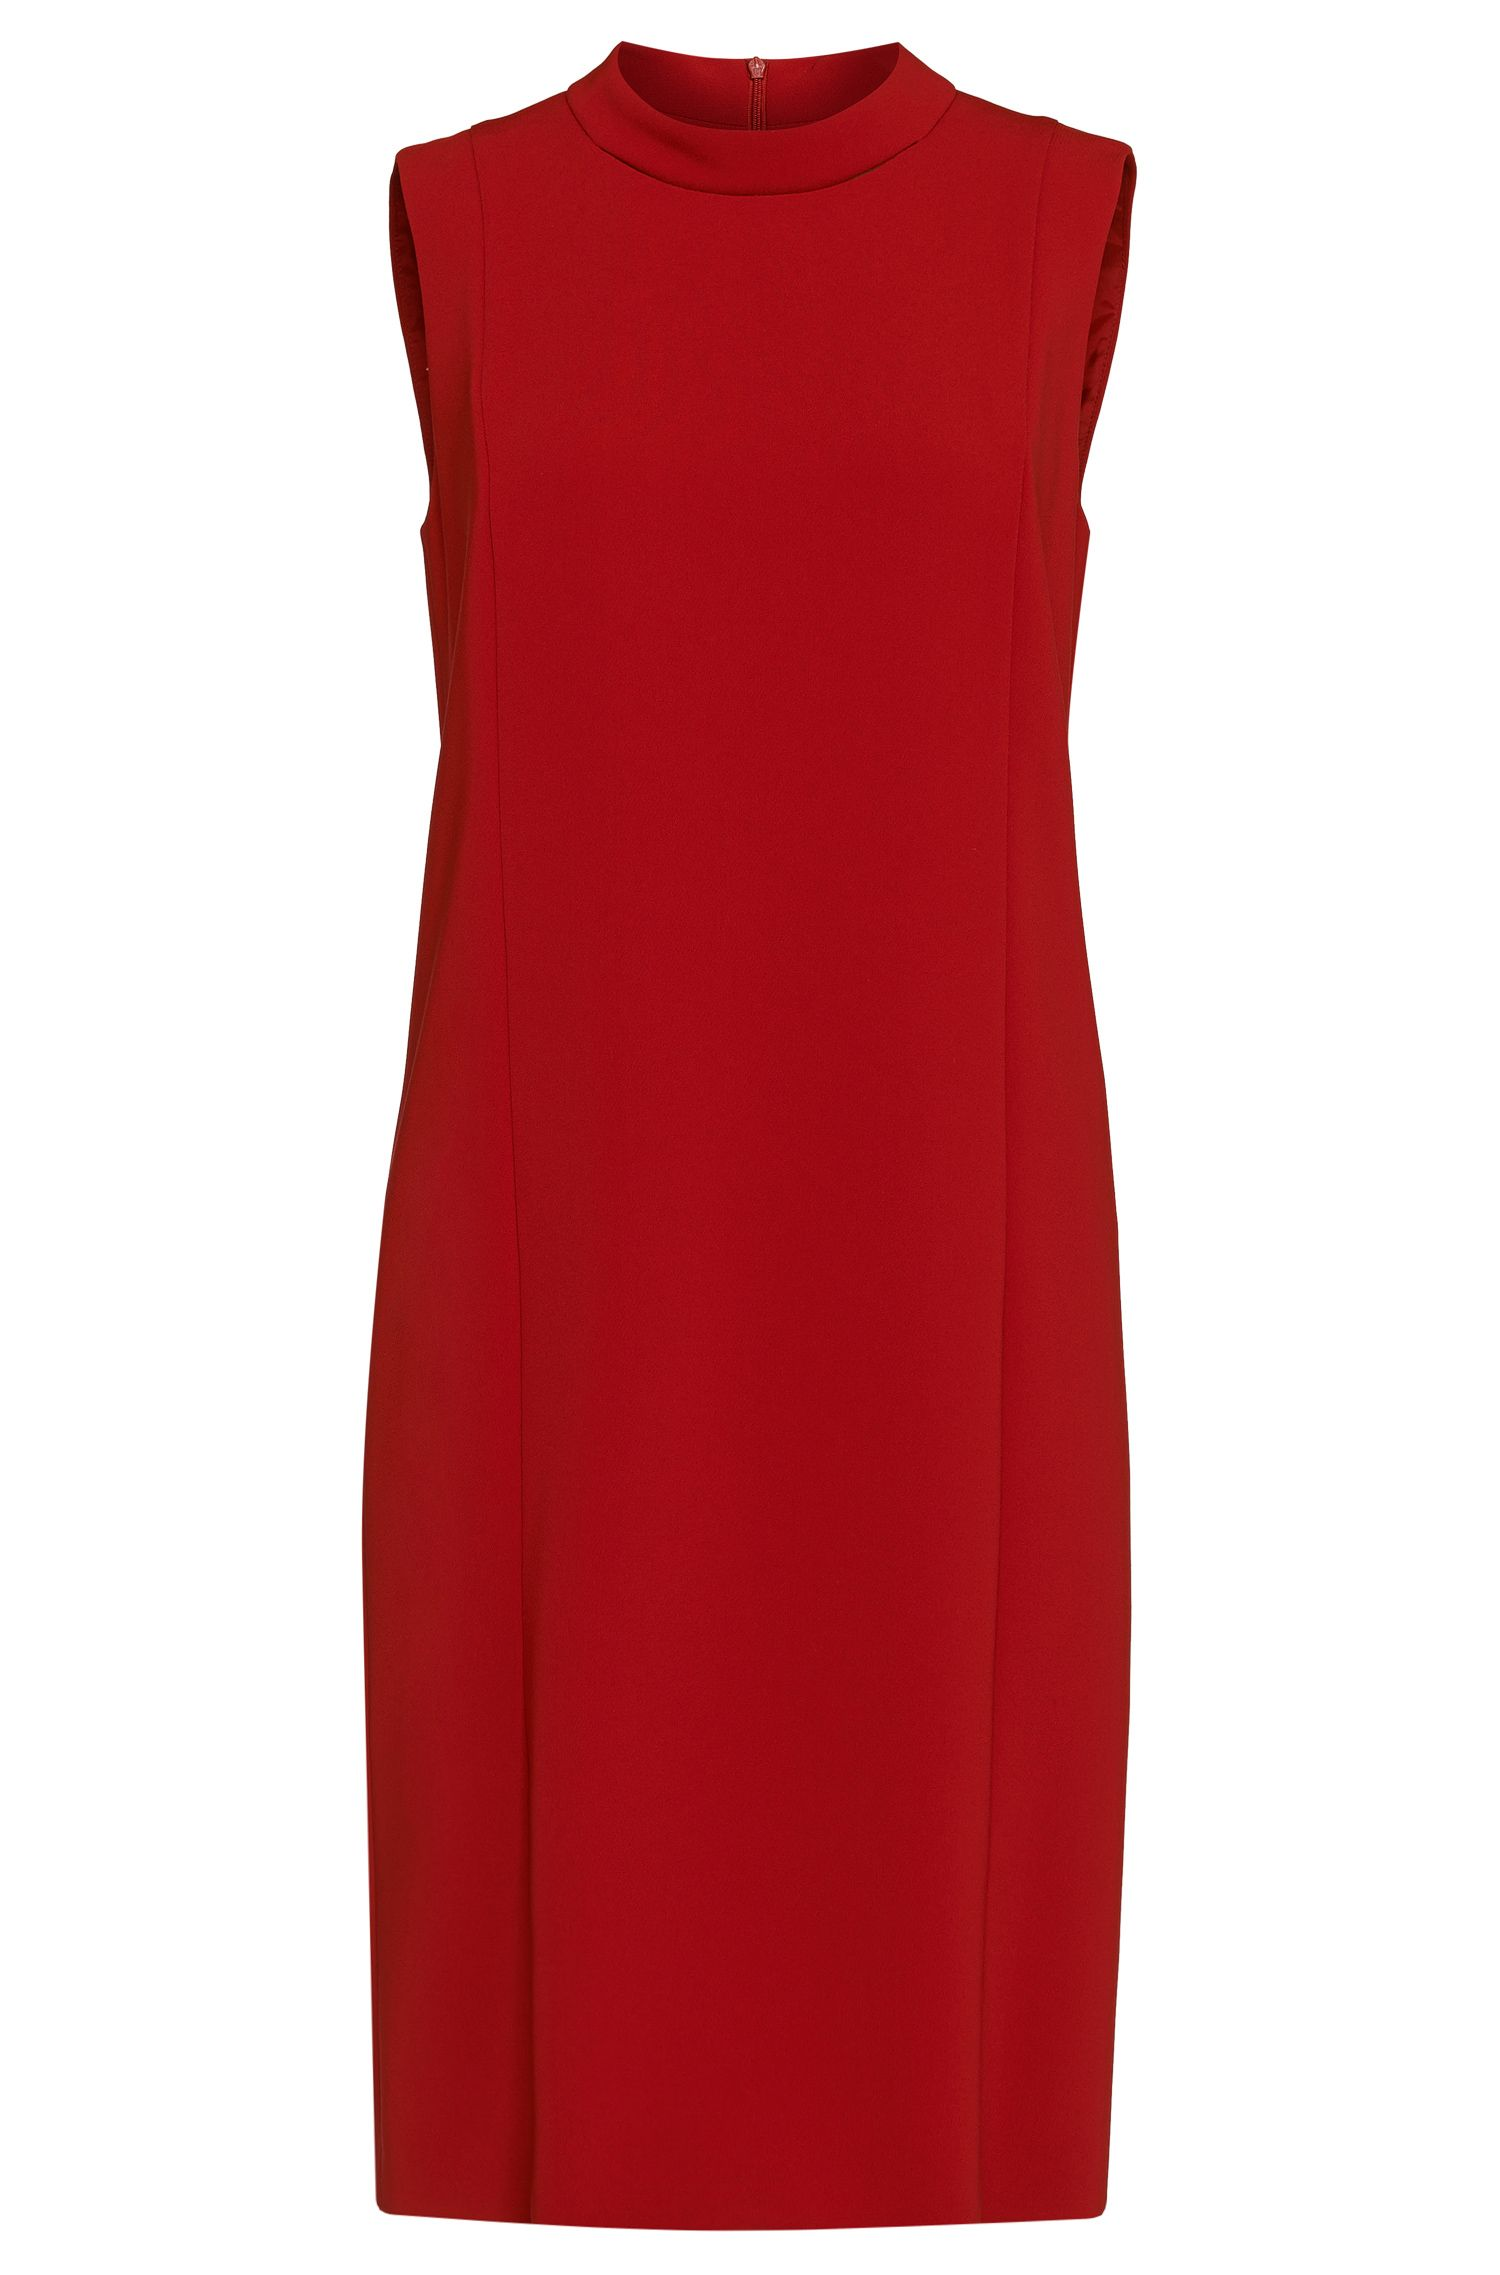 'Daneyo' | Crepe Cut-Out Shift Dress